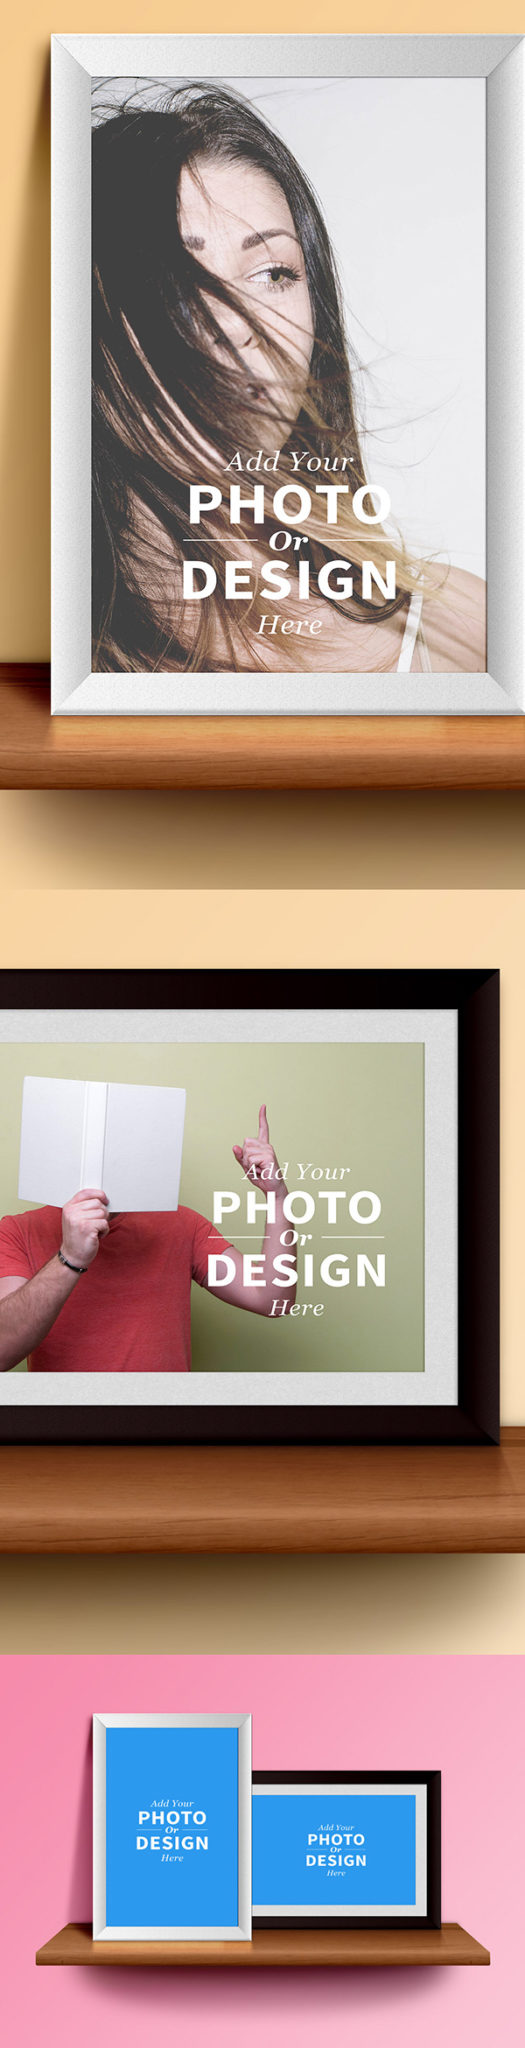 PSD Free Poster Mock-ups photo frames